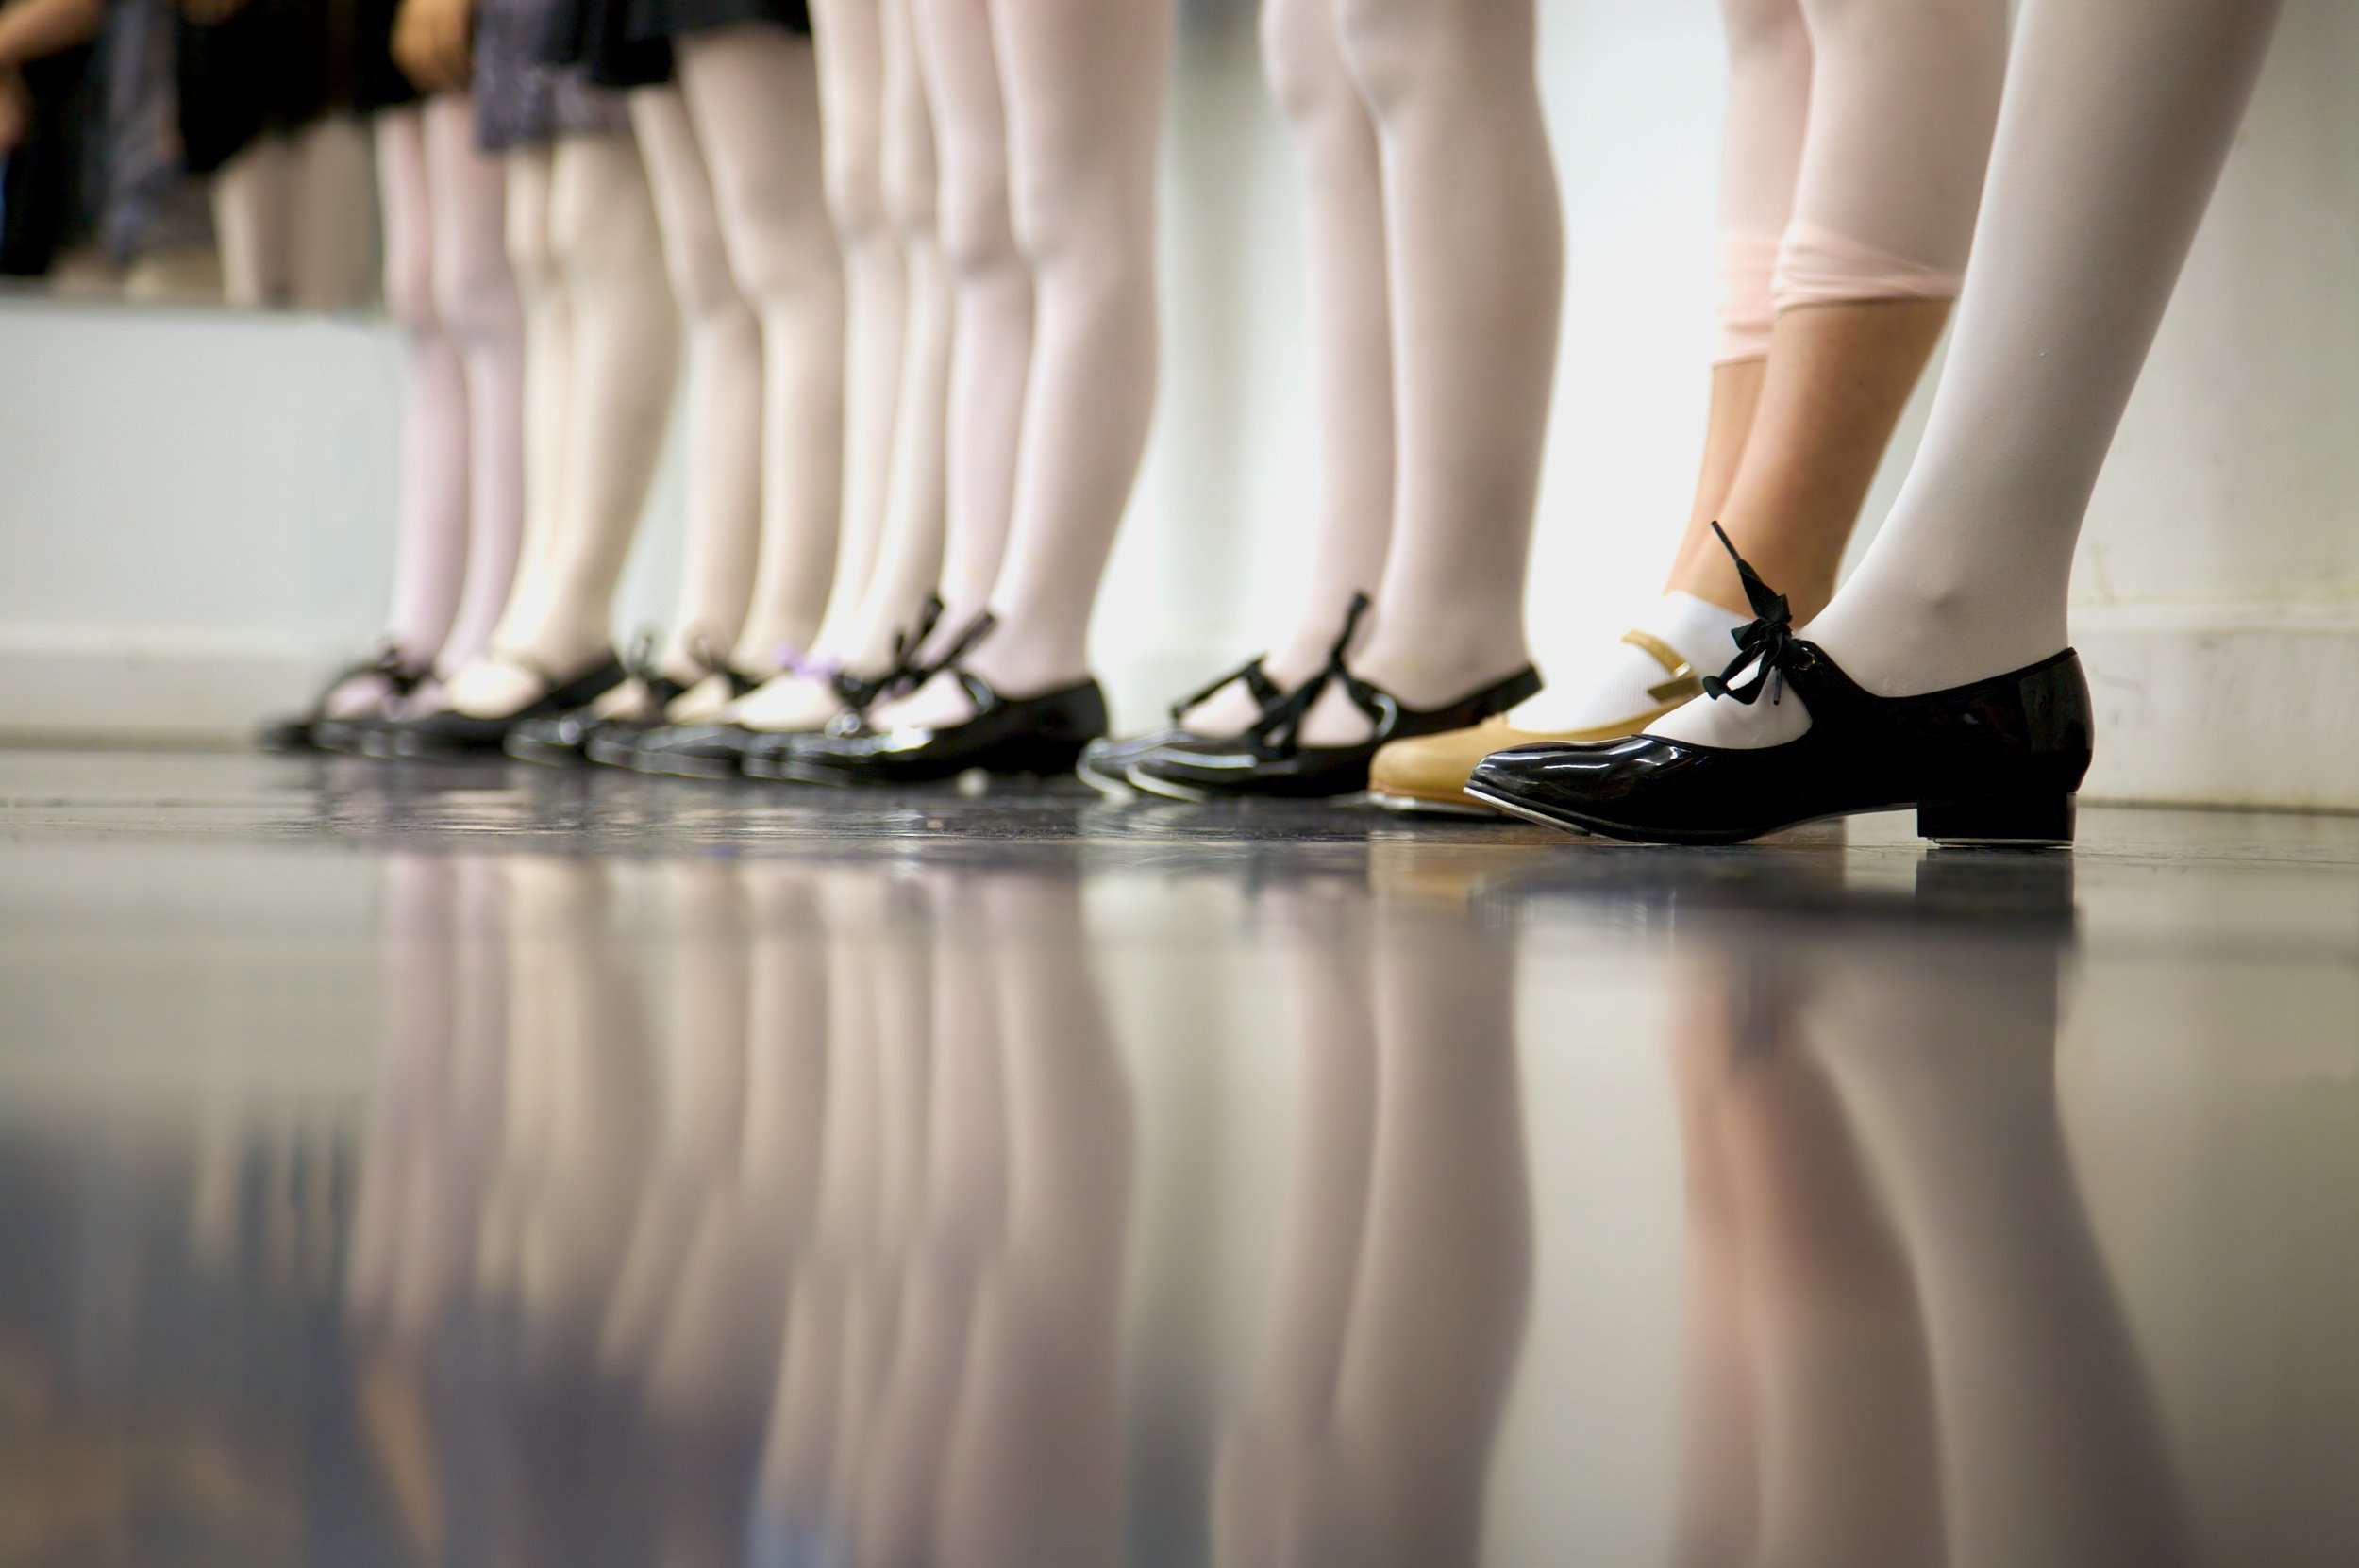 Let's Get Tapping - Start tapping your toes (and heels) this fall!